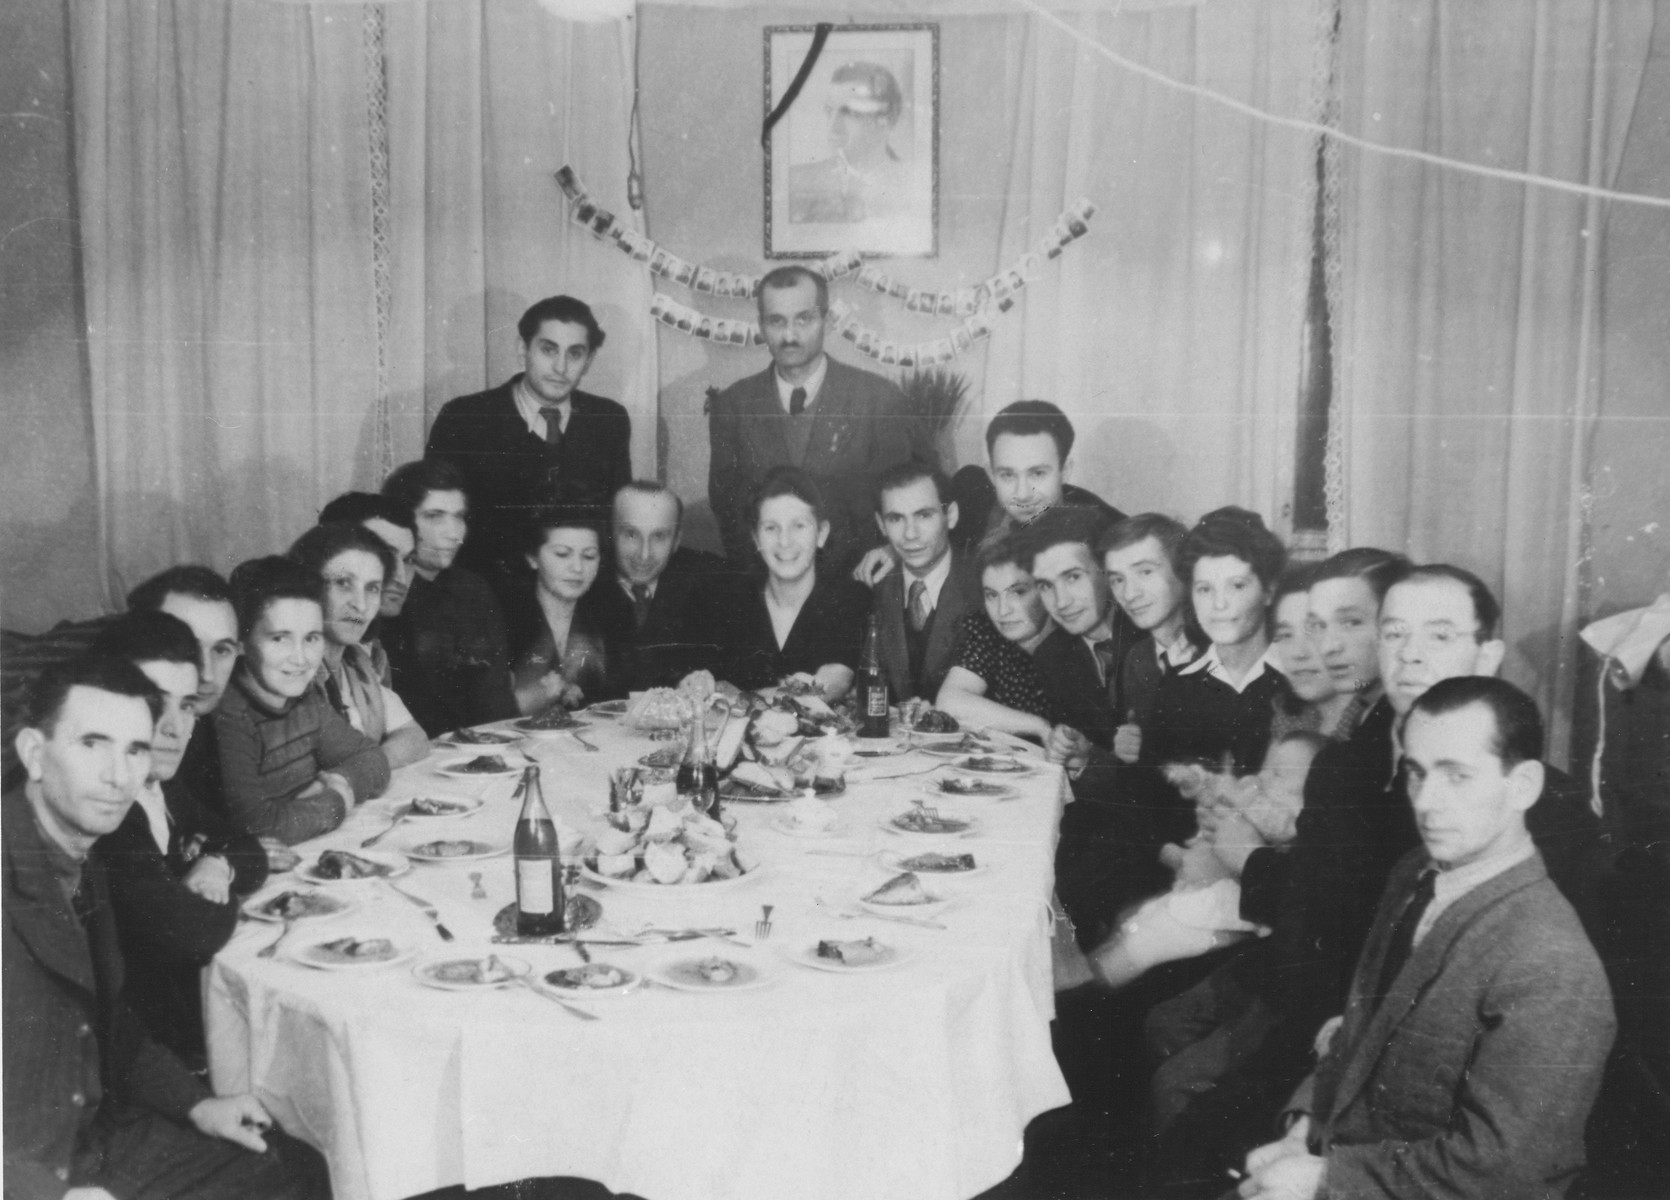 Jewish survivors from Biala Rawska at a social gathering in Lodz.  On the wall hangs two strips of ghetto ID card photos hung on ribbons.     Pictured around the table (clockwise starting from lower left) are:  (first five unknown), Idl Hamer, wife of Idl Hamer (name unknown), Zygmunt Goldberg (standing), Maria Rosenbaum (nee Koper, wife of Yumek and mother of donor), Benjamin Yumek Rosenbaum, unknown (standing), Izabella Elsztajn Sztubert (wife of Leon and aunt of donor from Skierniewce), Leon Sztubert (donor's uncle who found the collection), Salek Koper (in back), Rivka Koper (wife of Yuzek), Yuzek Koper, Jacob Koperszmidt, Mania Koperszmidt (wife of Jacob), Gitla Koperszmidt, Regina Koperszmidt (baby), Szulim Koperszmidt, Leon Koperszmidt, and unknown.  Among those pictured around the table are:  Zygmunt Goldberg (standing at the left); Maria Koper-Rozenbaum (sitting in front of Goldberg; she is the donor's mother); Benjamin Juma Rozenbaum (next to Maria on the right); Izabella Elsztajn Sztubert (next to Benjamin; she is the donor's aunt from Skierniewce); Leon Sztubert (next to Izabella; he is the donor's uncle who found the collection); Gitl Sztubert (second from the left; she is Leon's cousin).